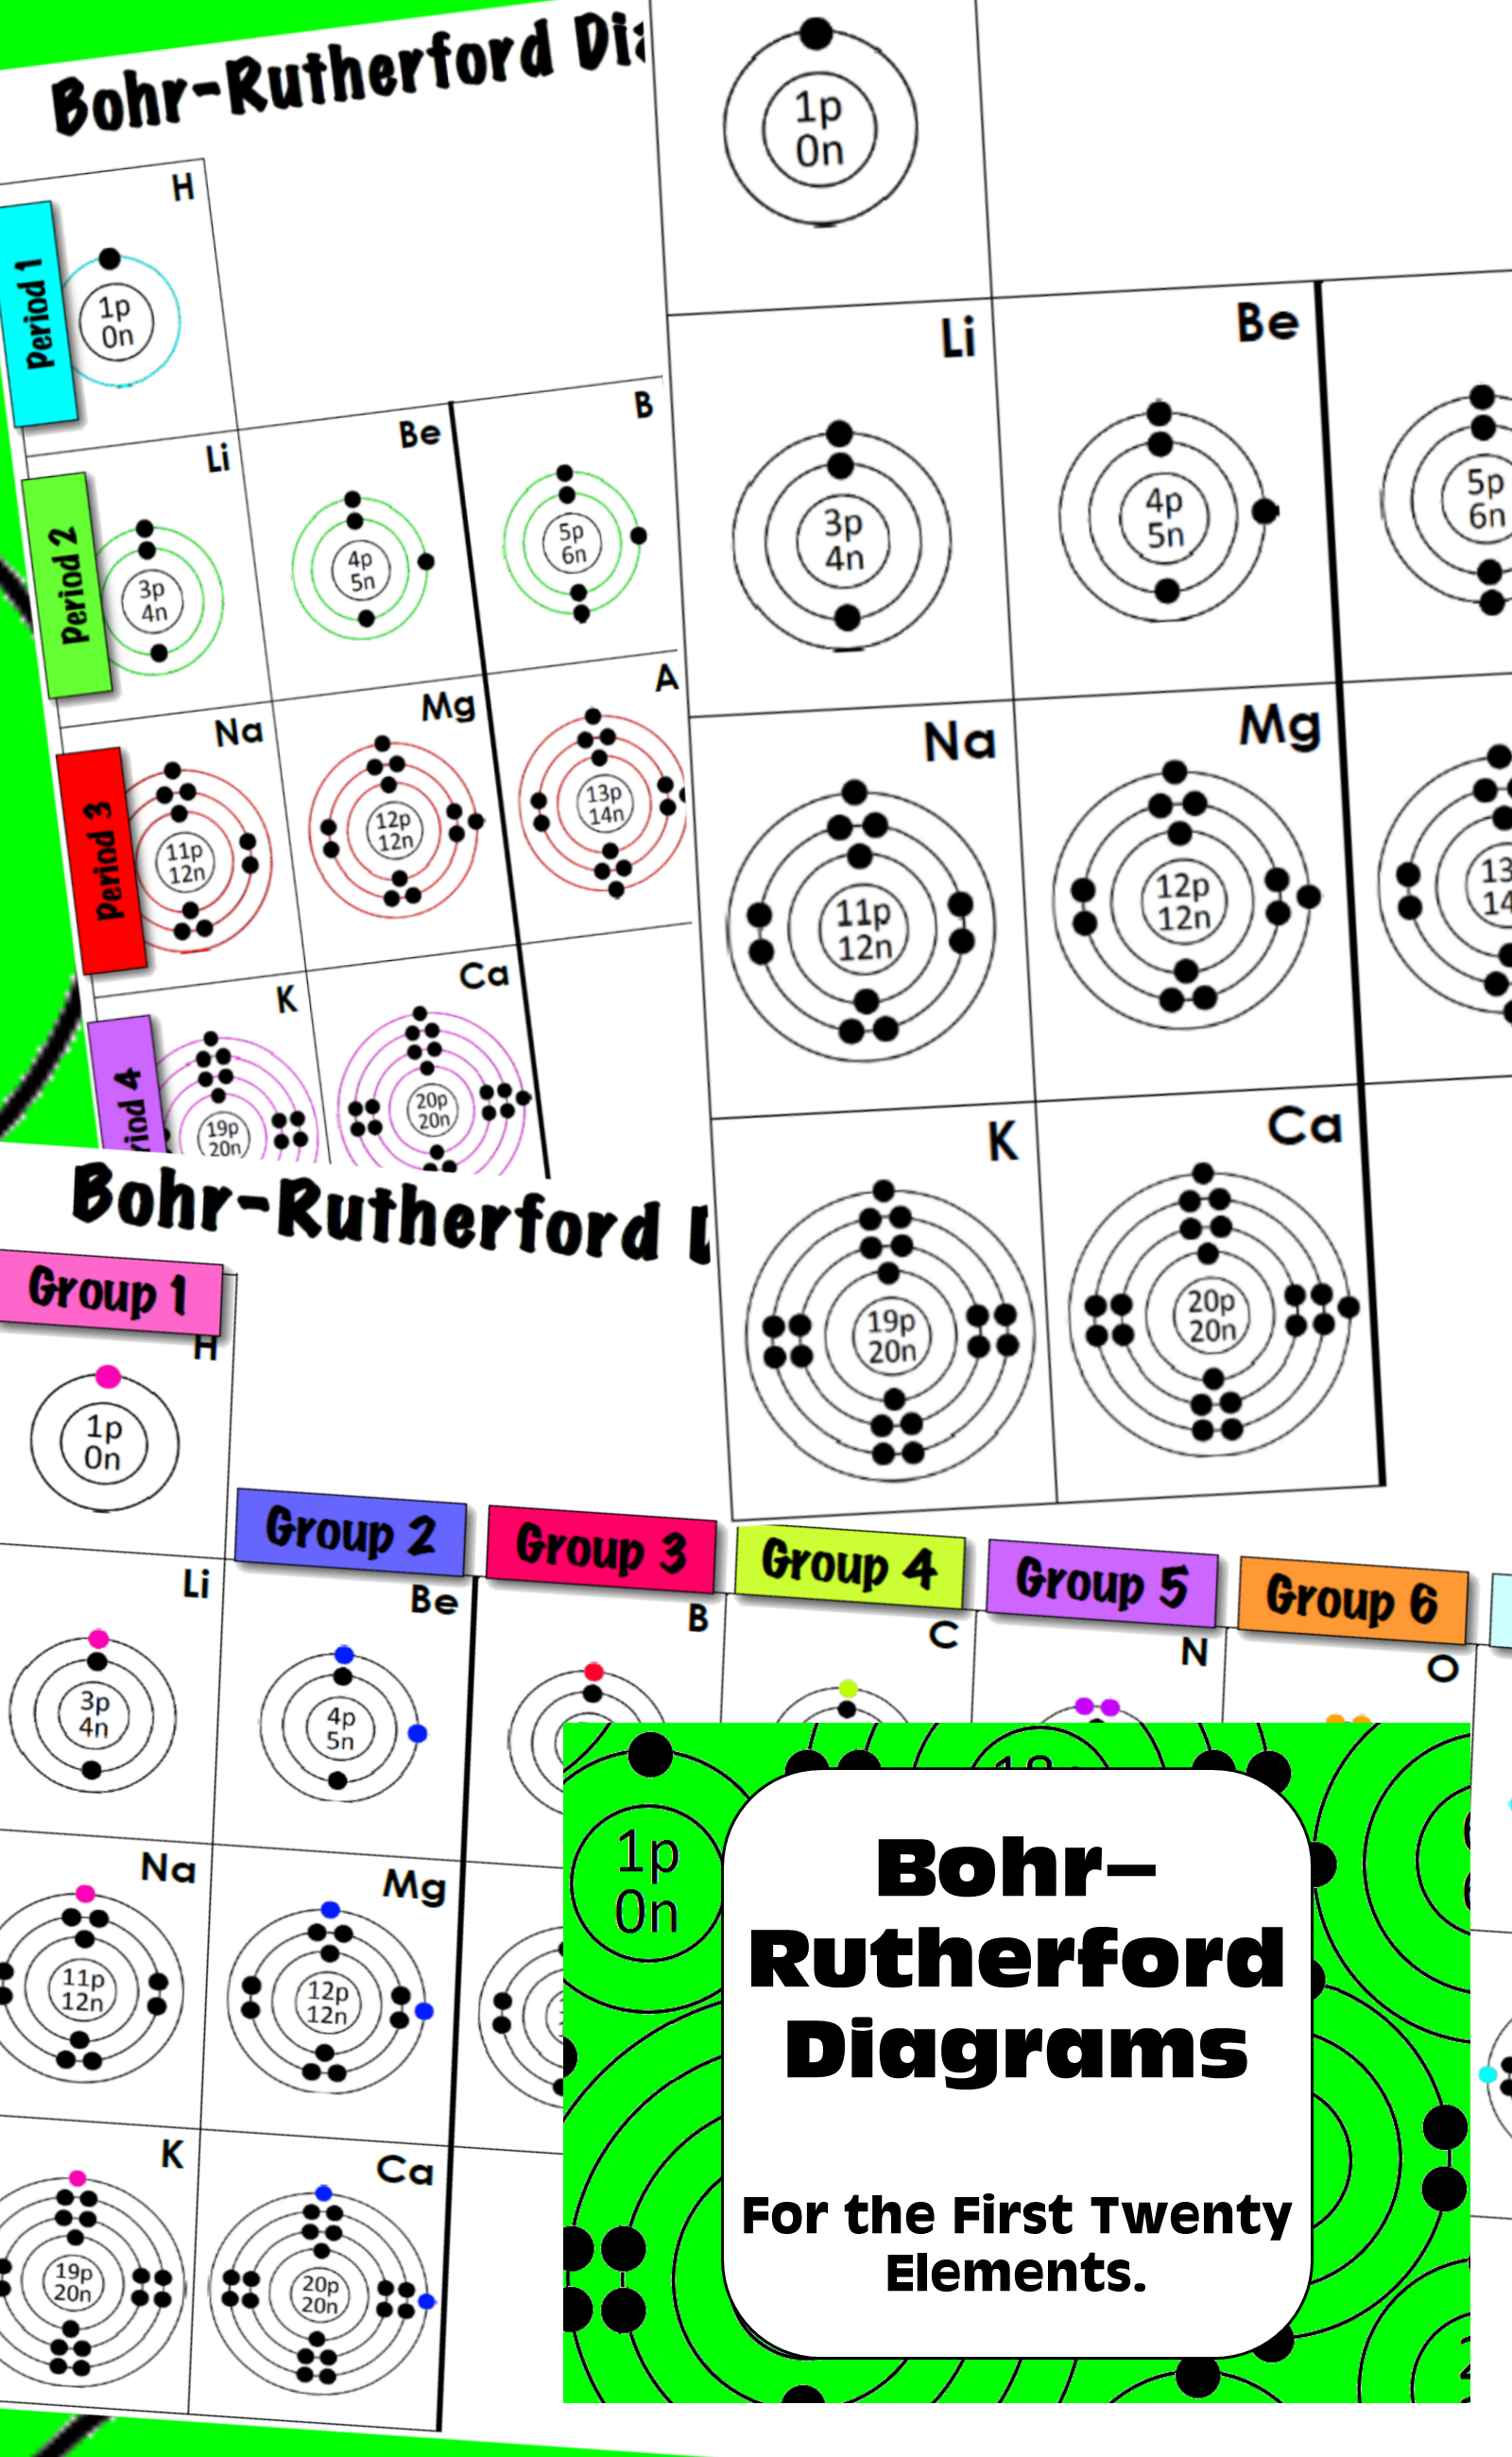 Bohr models bohr rutherford diagrams for the first twenty bohr rutherford diagrams for first twenty elements student graphical organizer color coded answers pooptronica Choice Image